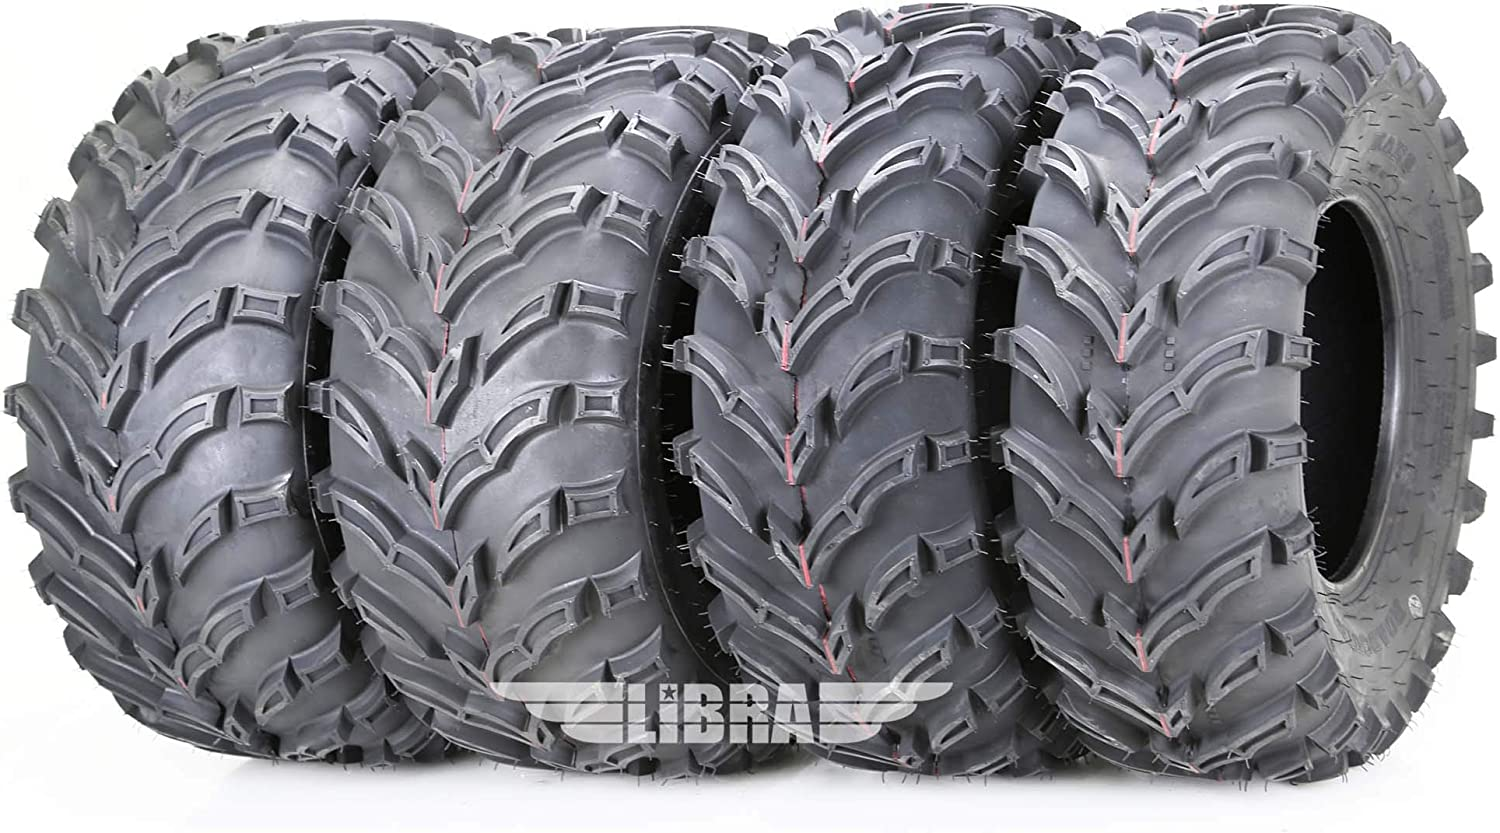 Set of 4 ATV 2021 spring and summer new UTV Tires Online limited product Rear 276 26x9-12 26x11-12 Front 10275